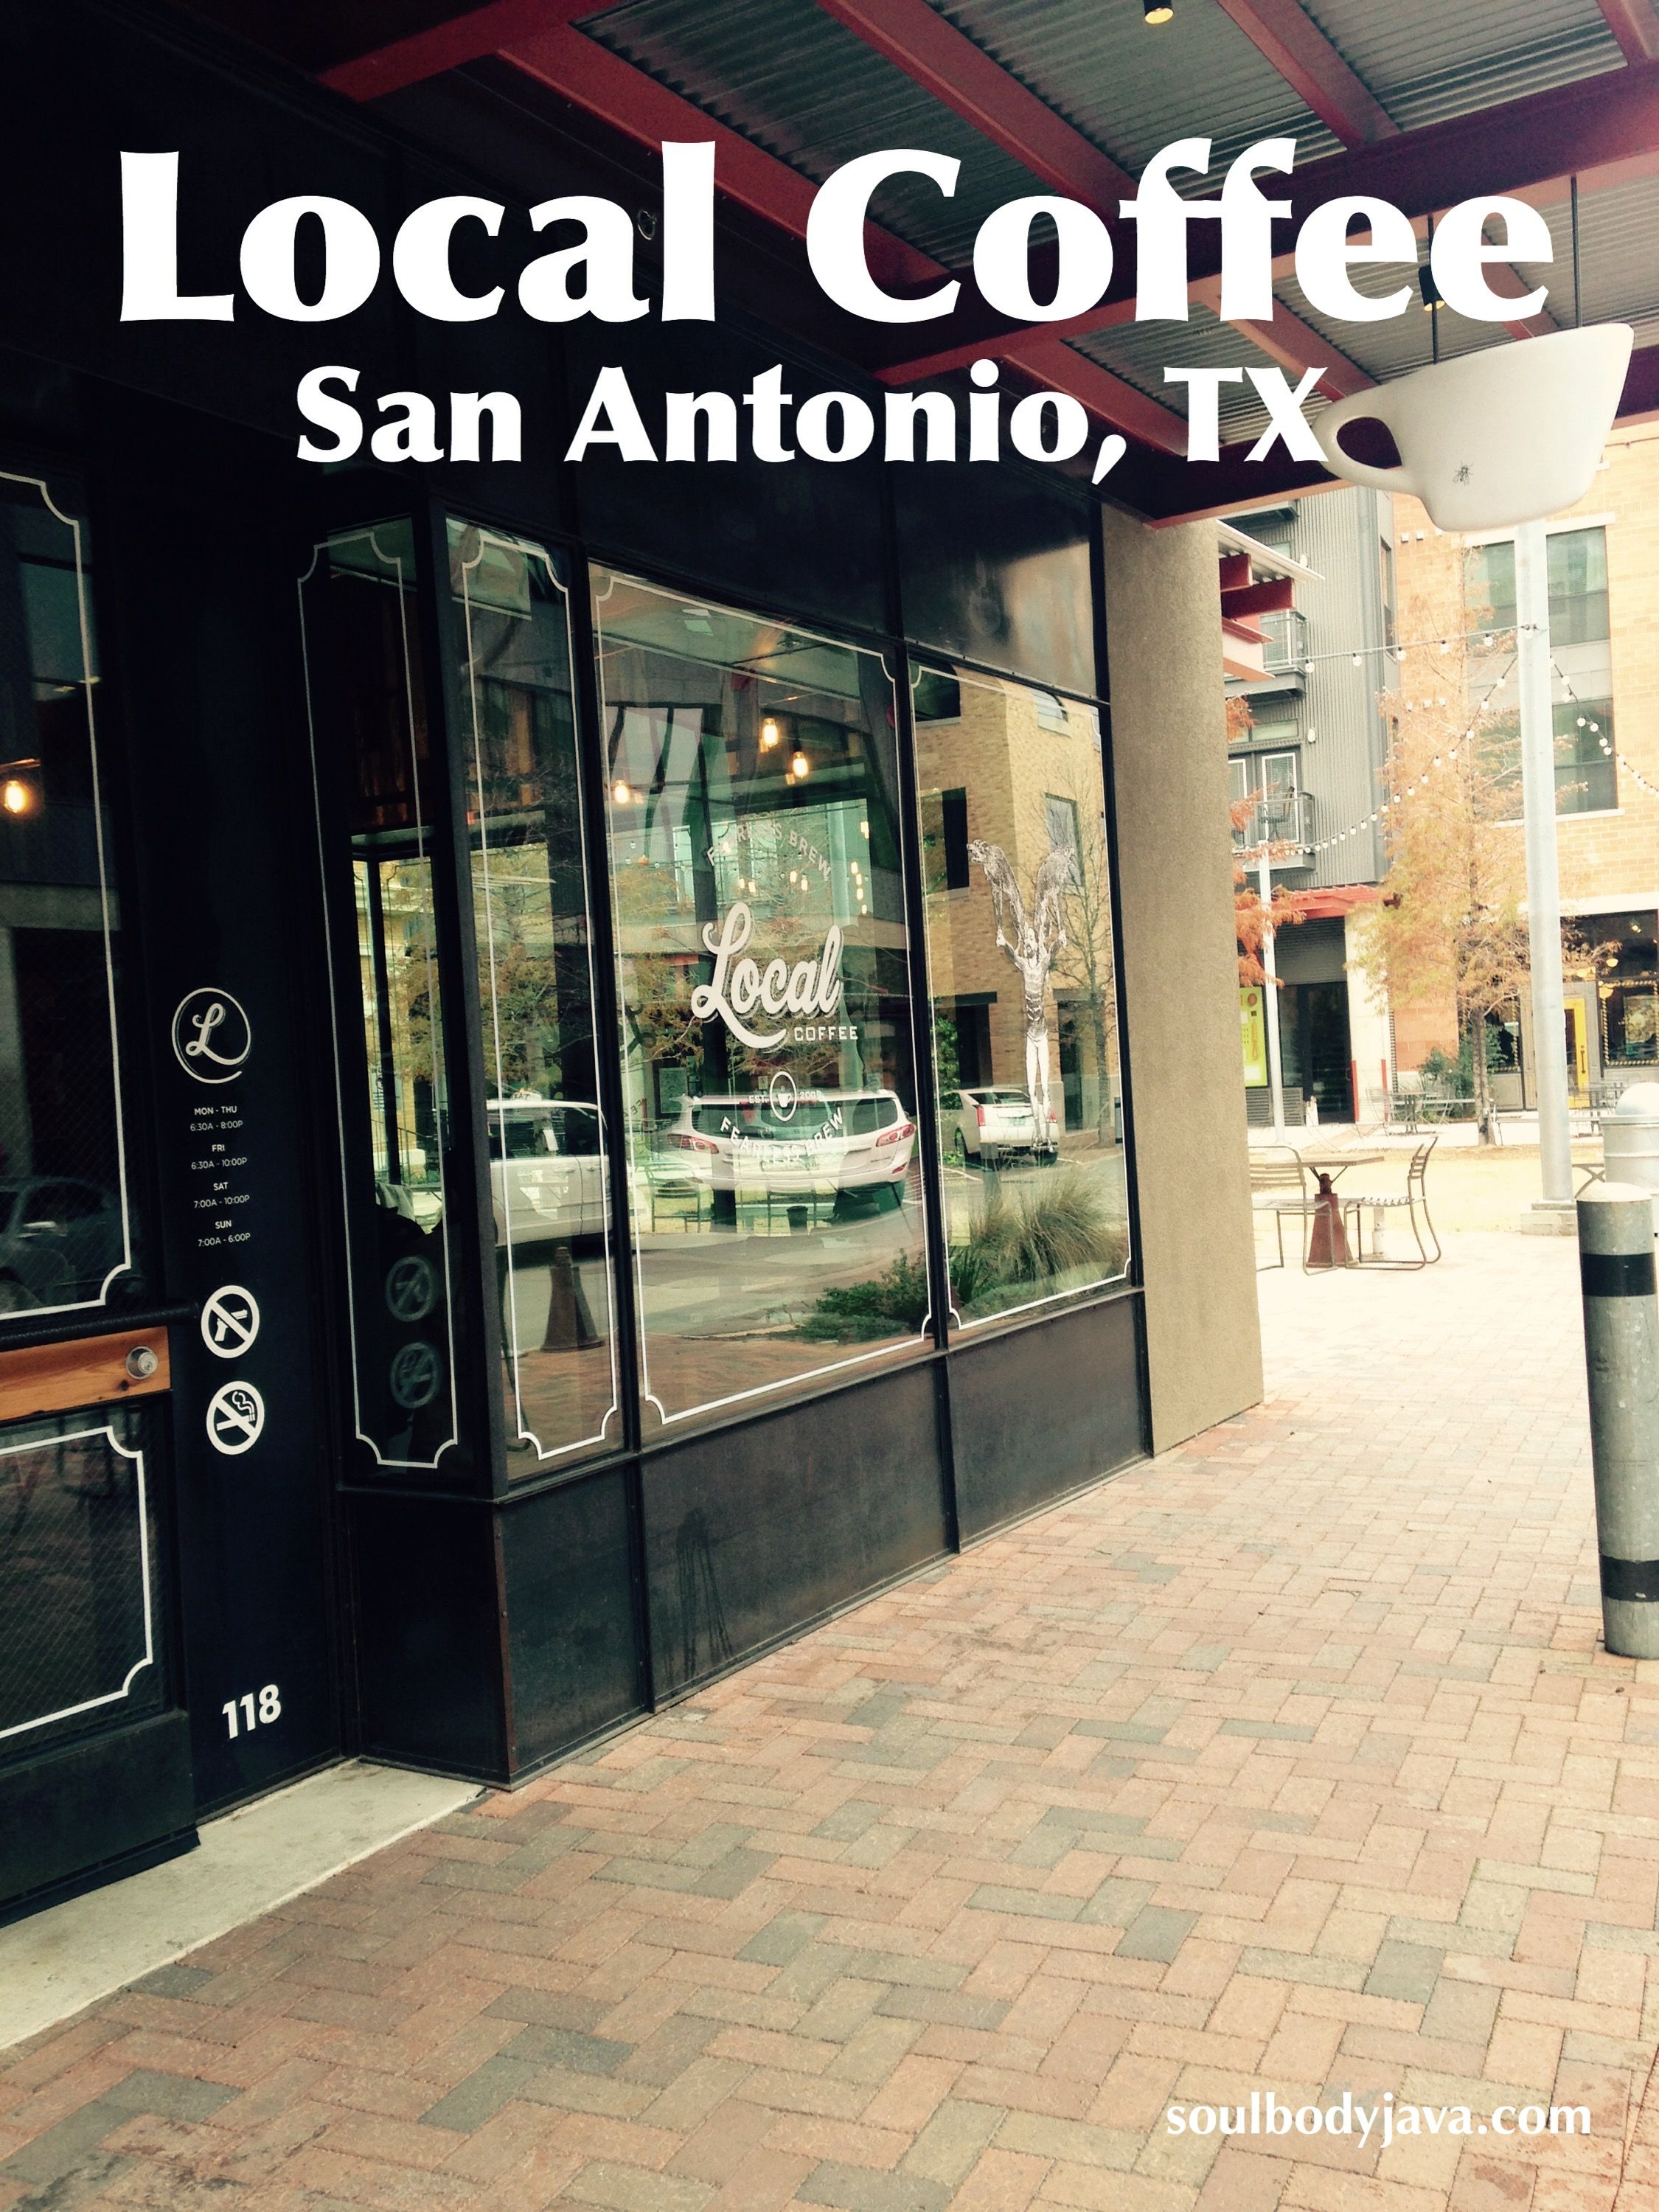 Local Coffee In San Antonio Tx Soulbodyjava Com